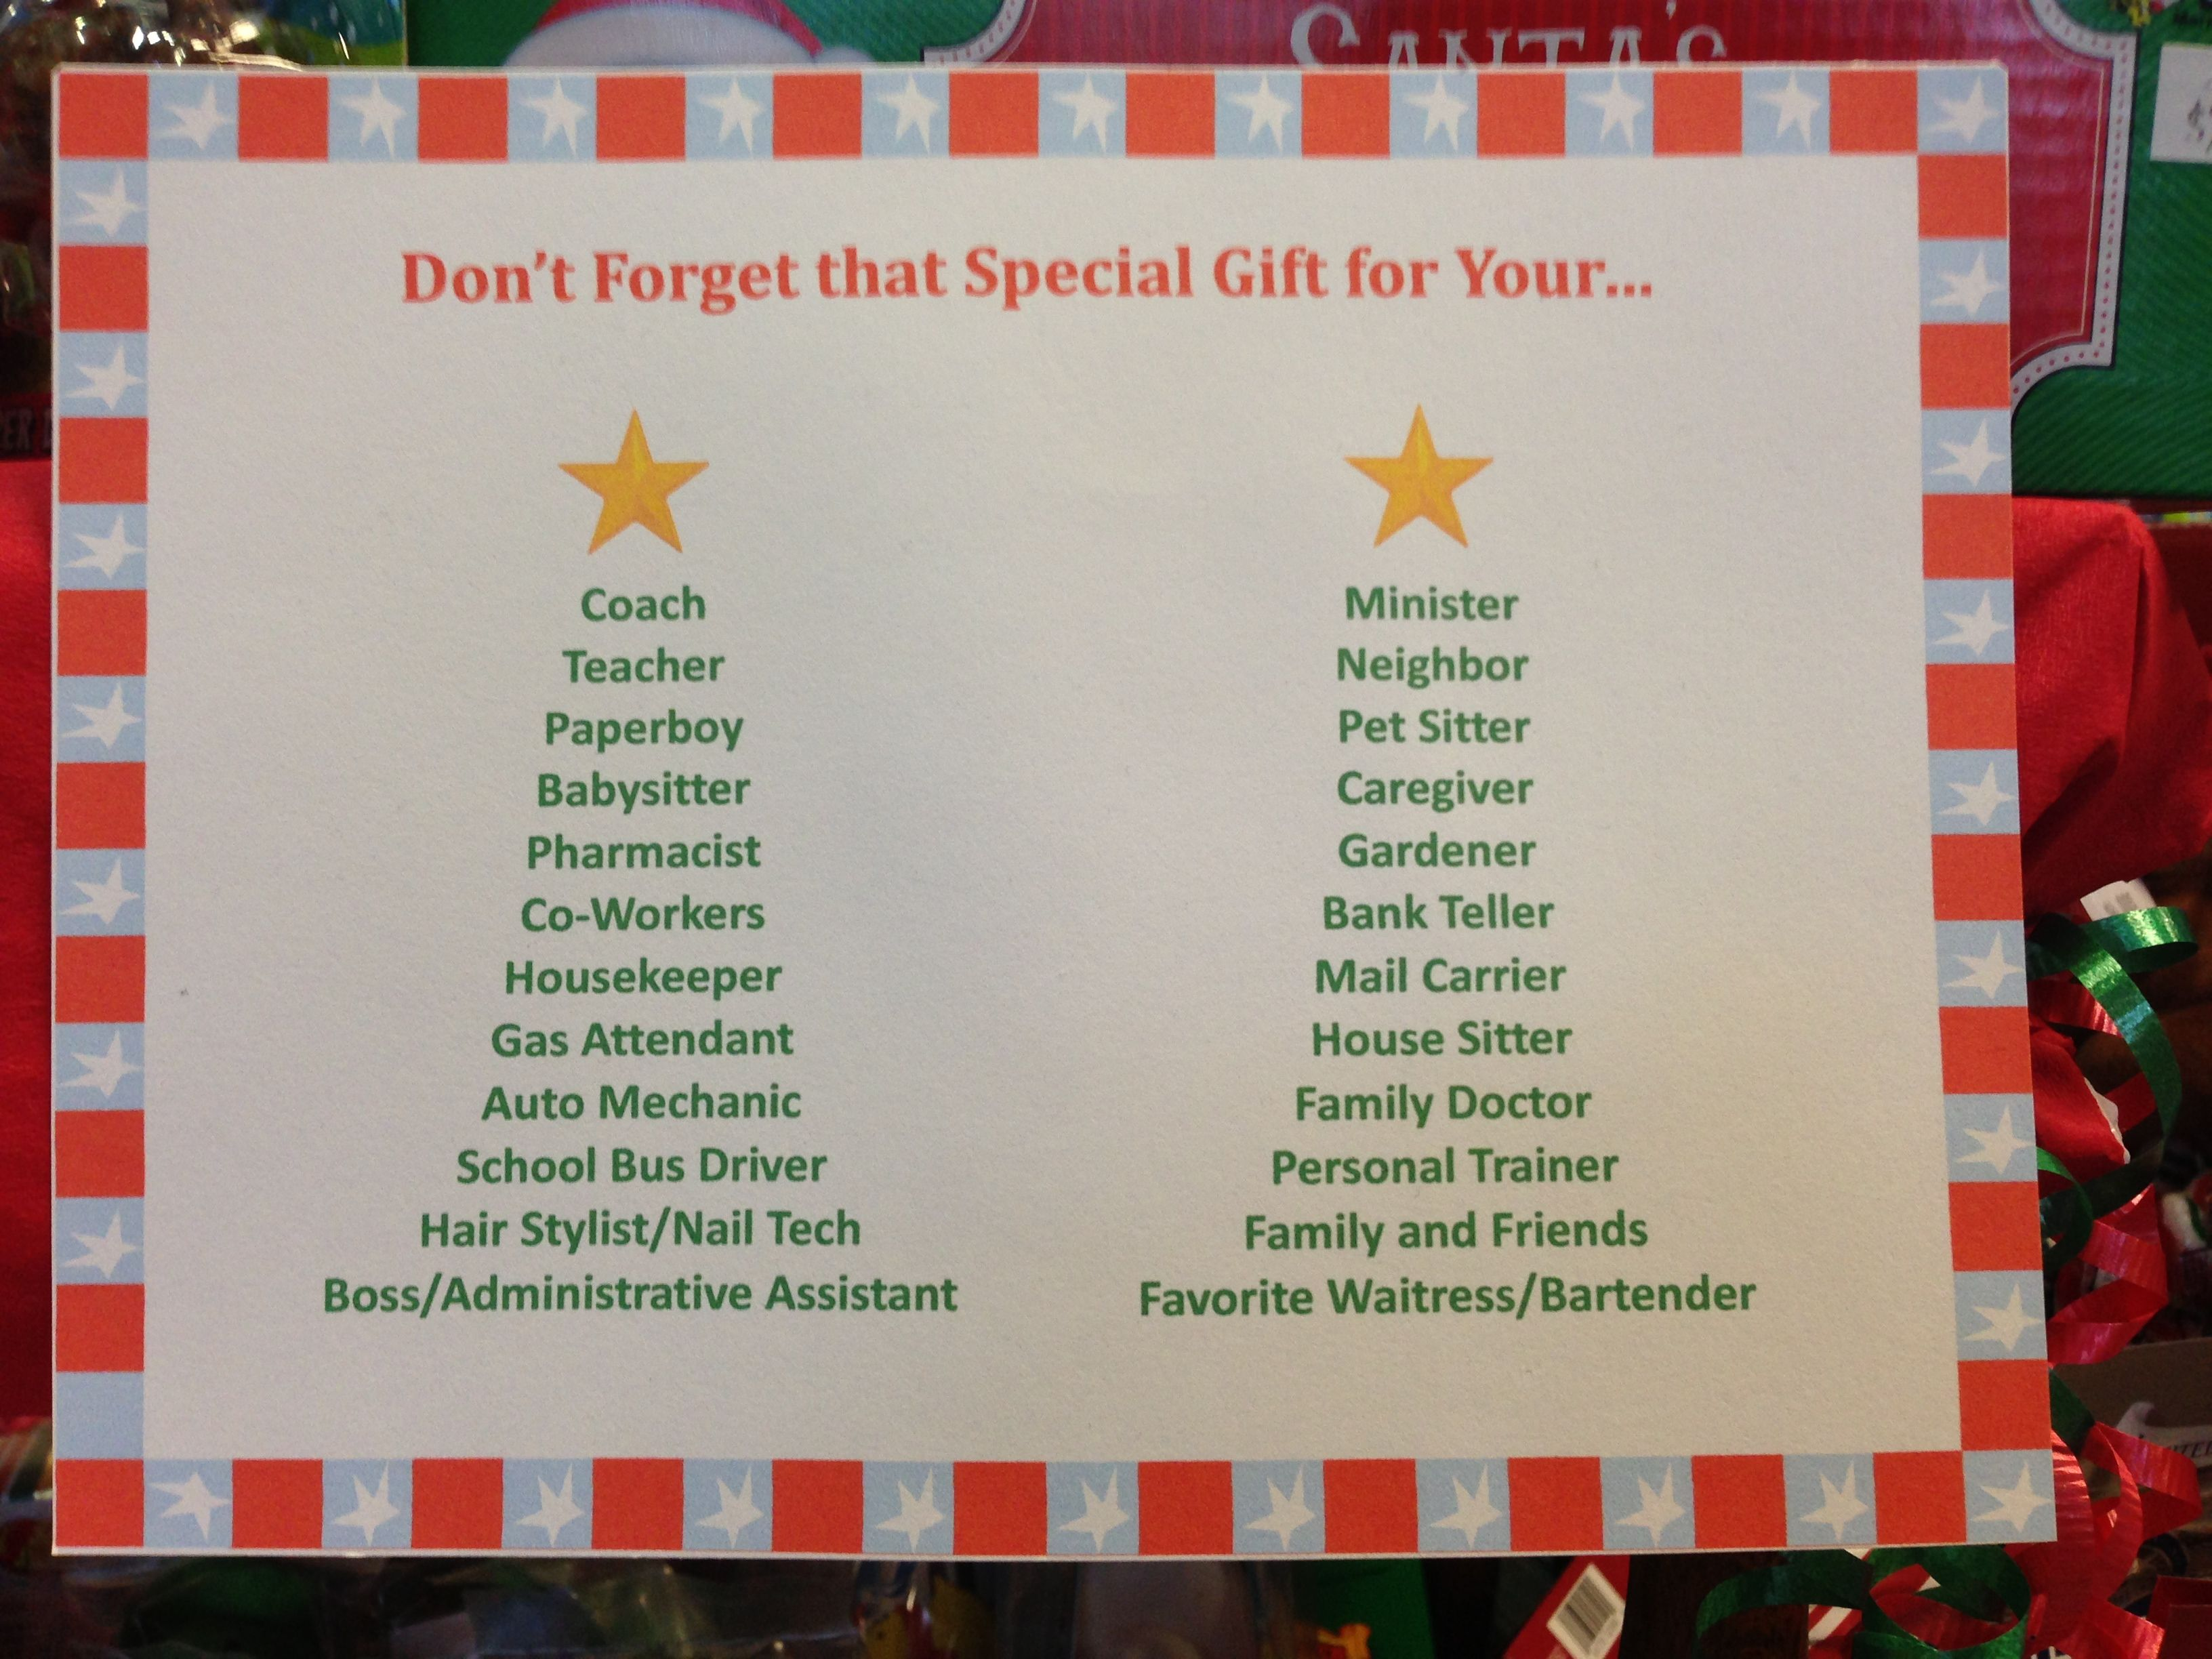 Check your list twice for sweet treats for the special people in your life.